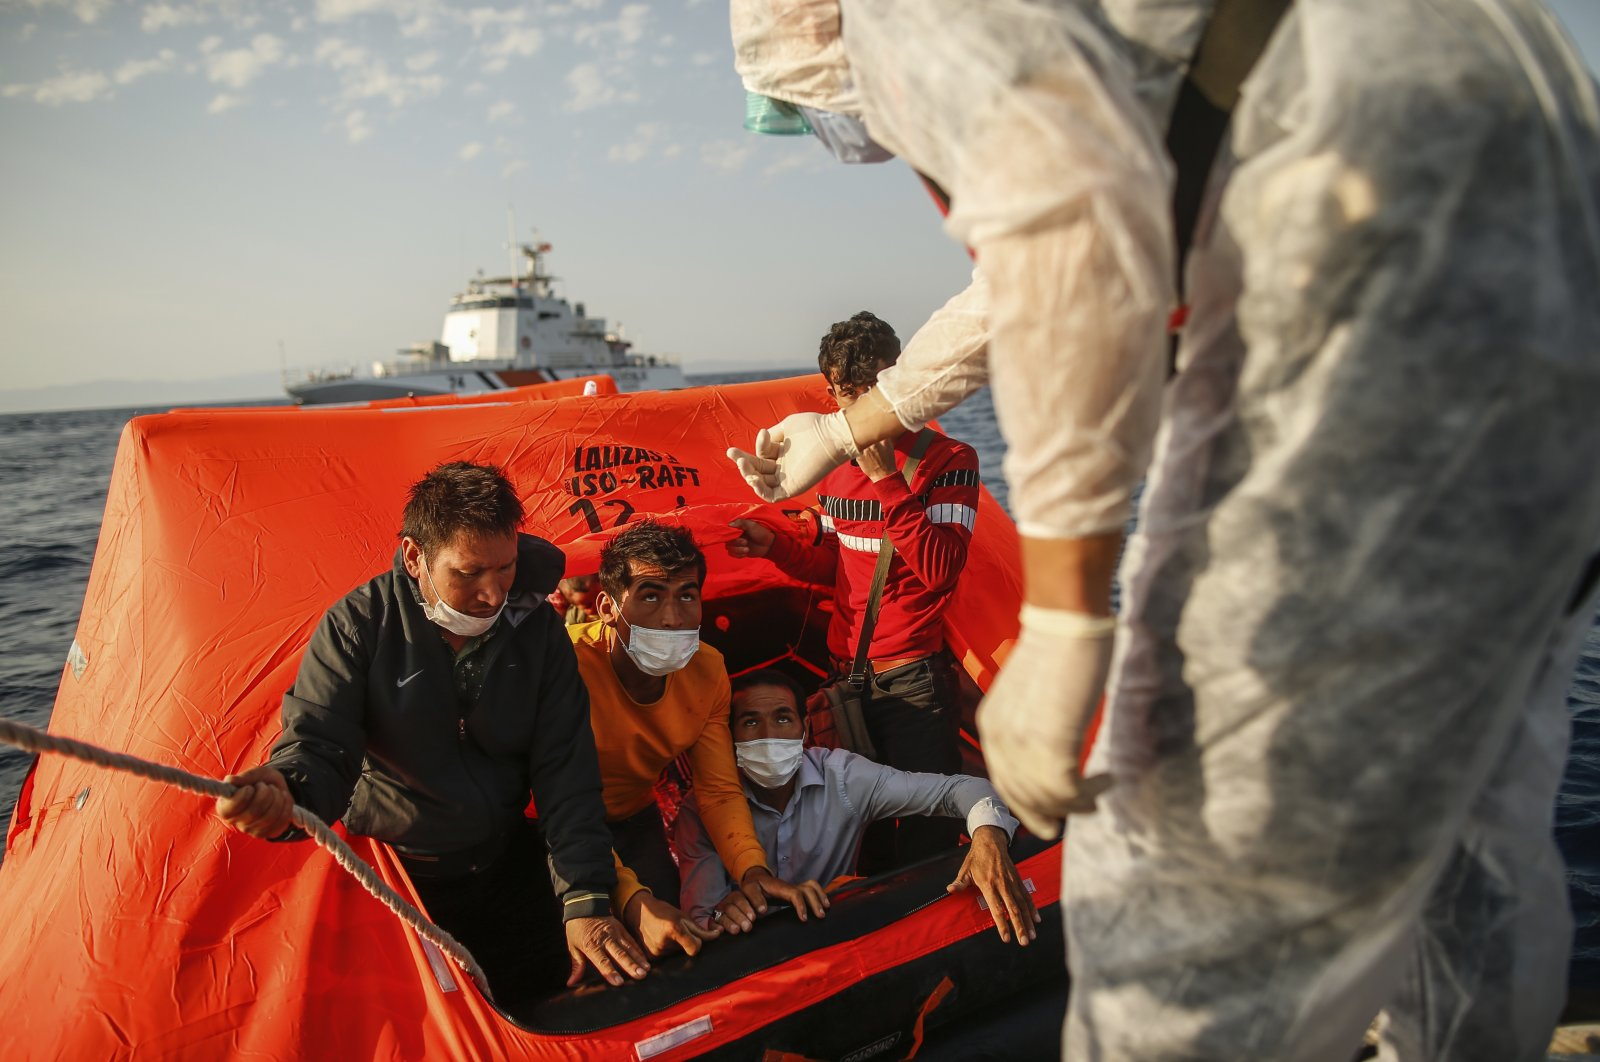 Turkish coast guard officers on their vessel, wearing protective gear to help prevent the spread of coronavirus, talk to migrants on a life raft after they were pushed back by the Greek coast guard in the Aegean Sea, between Turkey and Greece, Sept. 12, 2020. (AP File Photo)